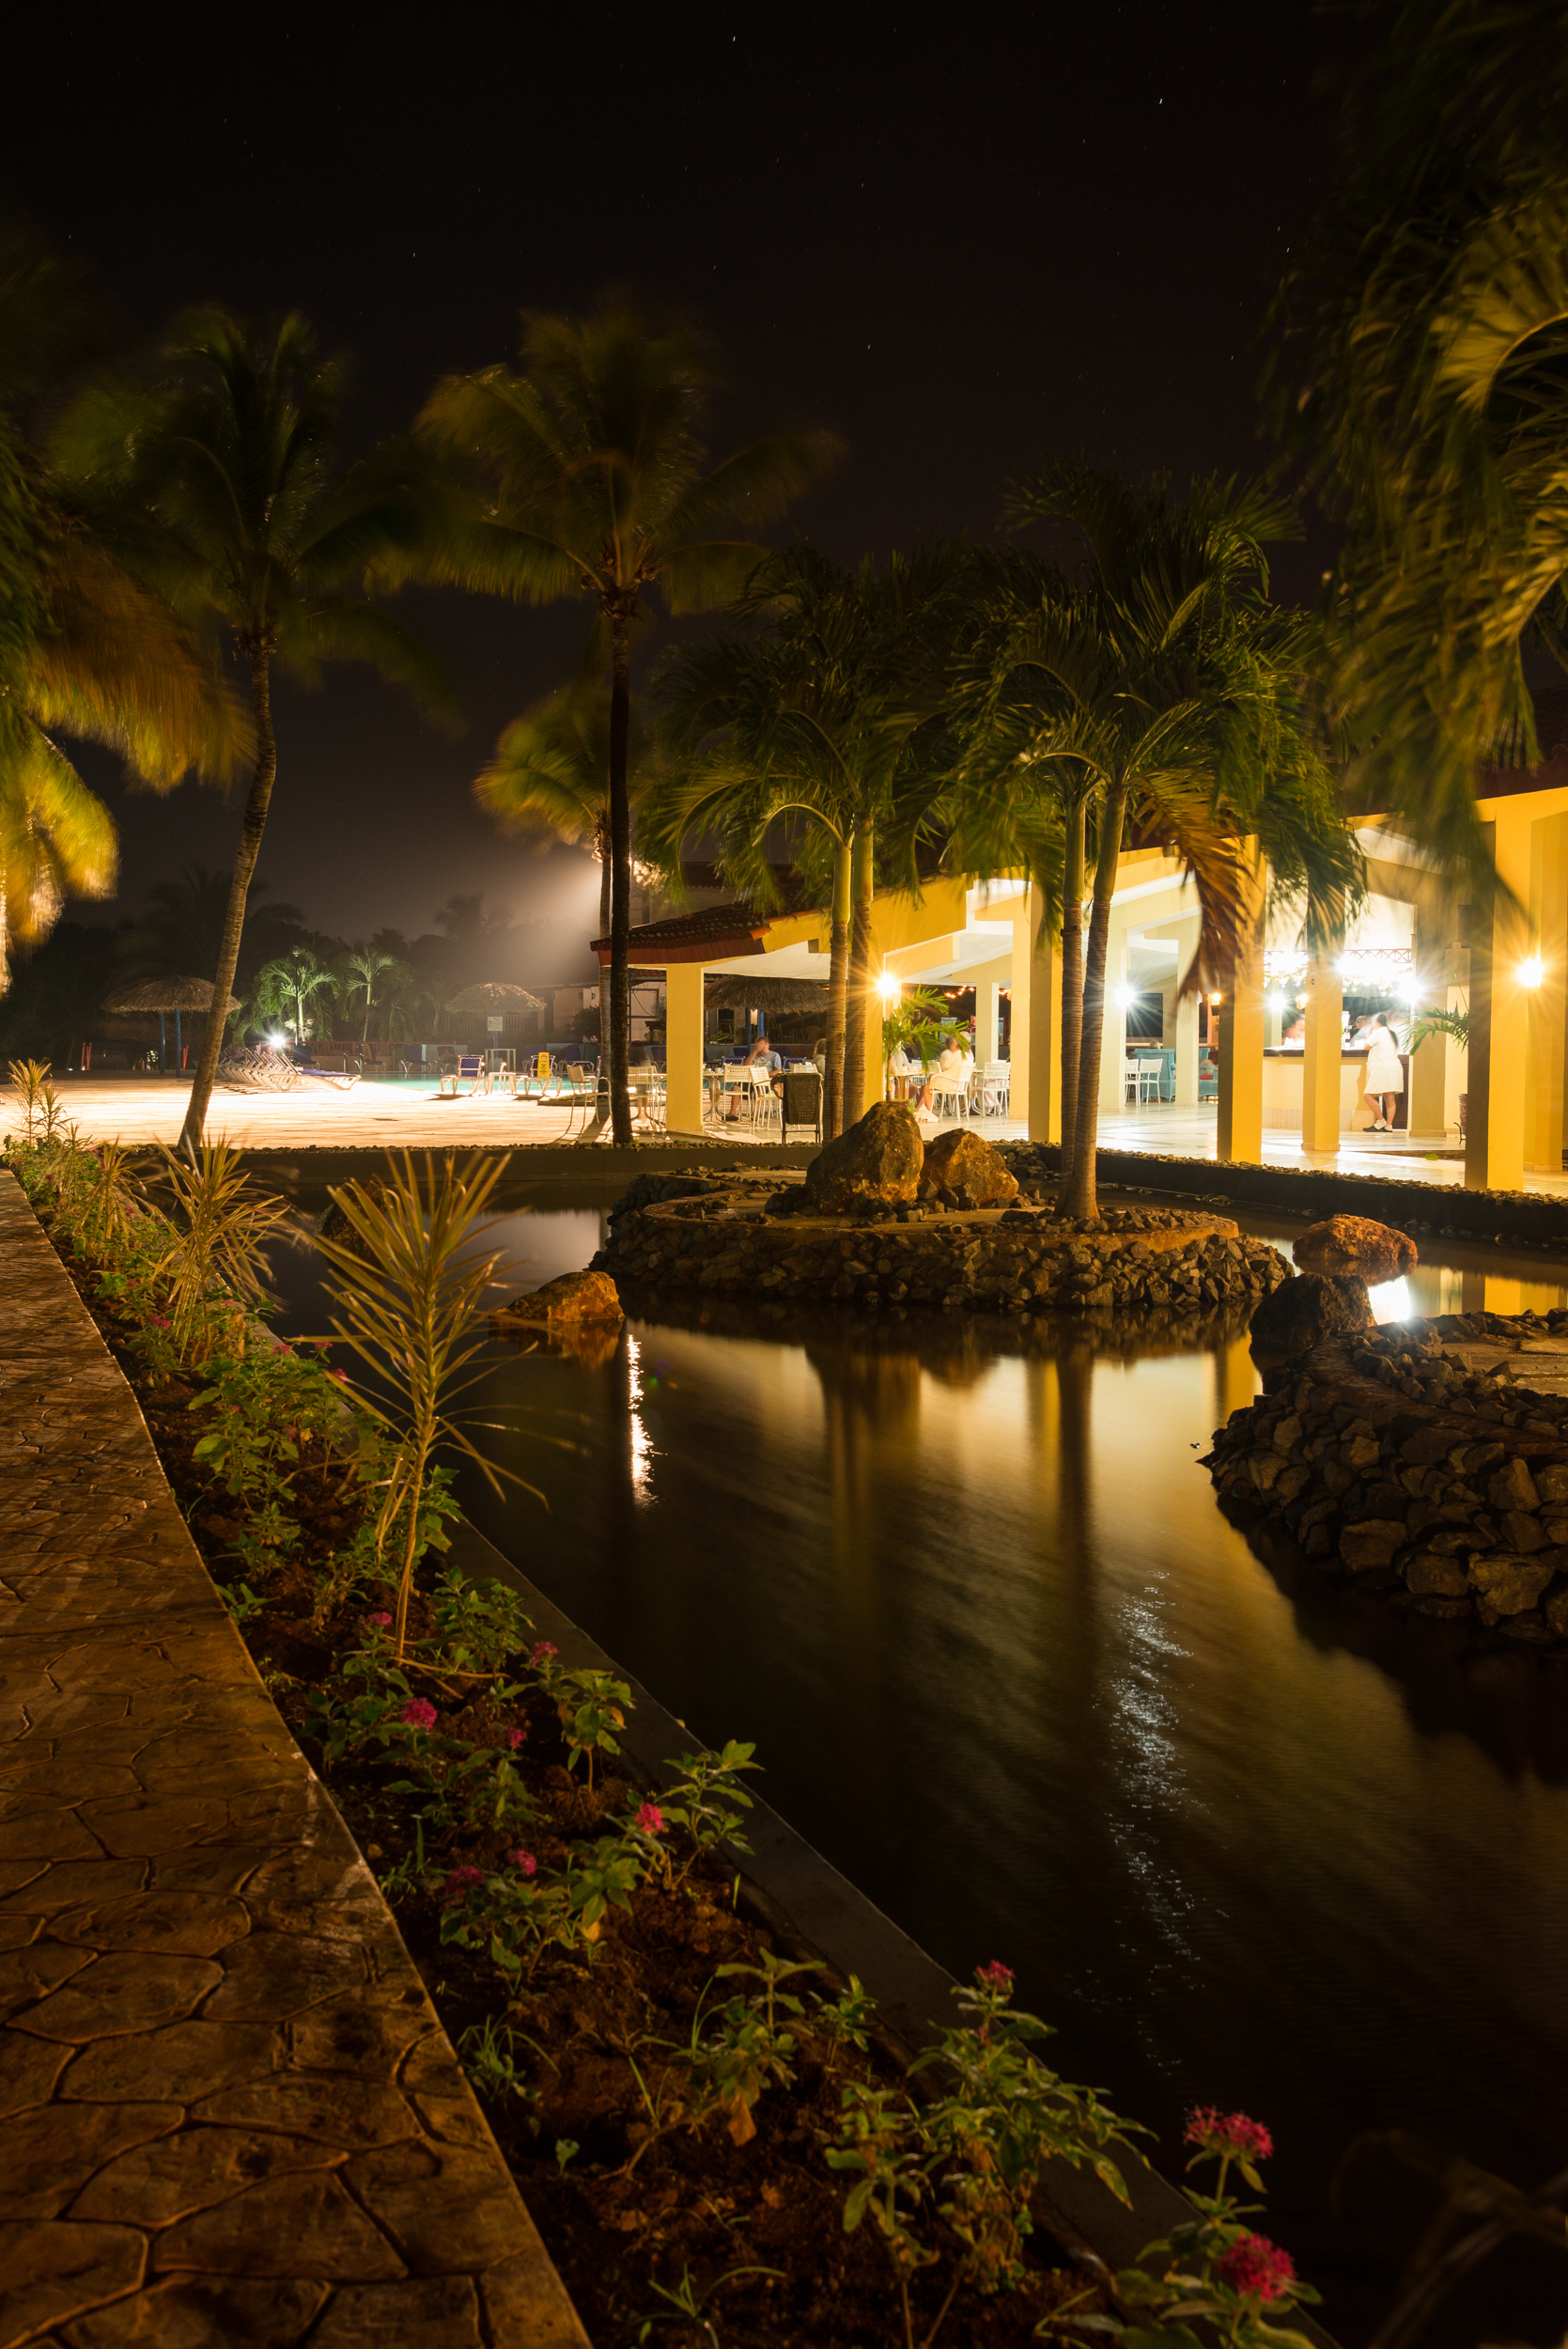 Cuba- Allegro/Naviti Resort by night